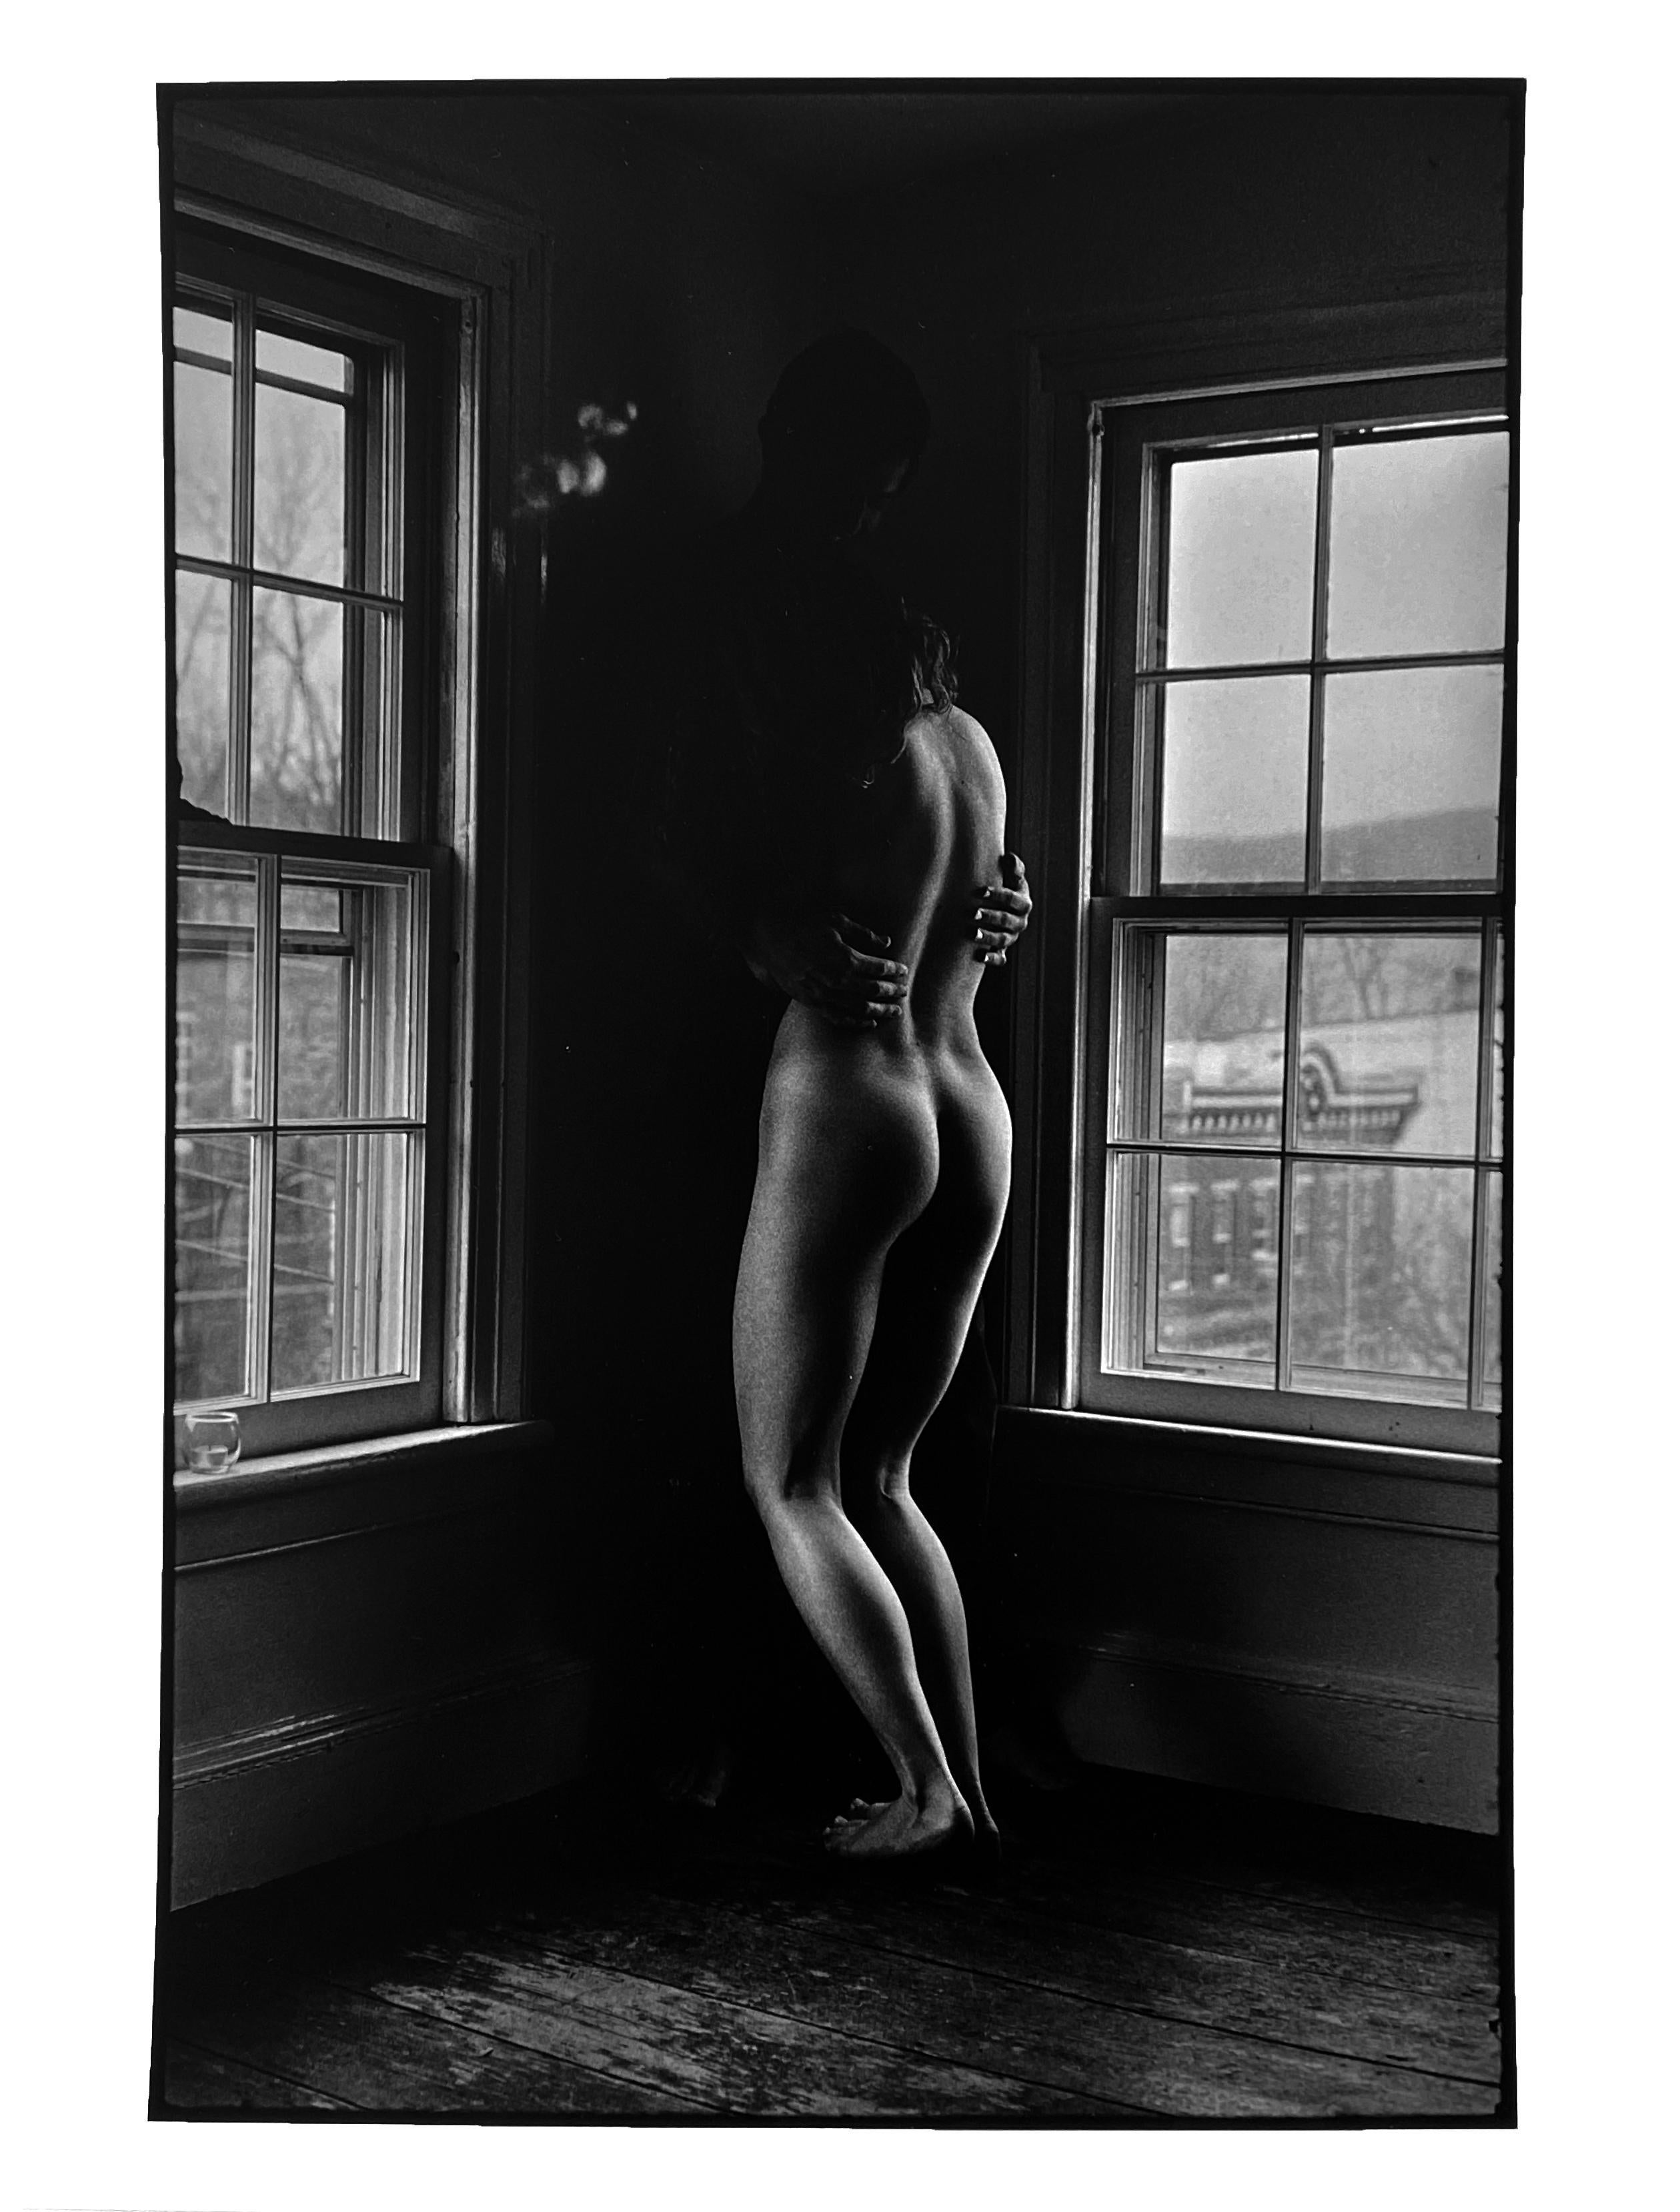 Kate Standing, Vintage Black and White Photography of Female Nude, Signed Print